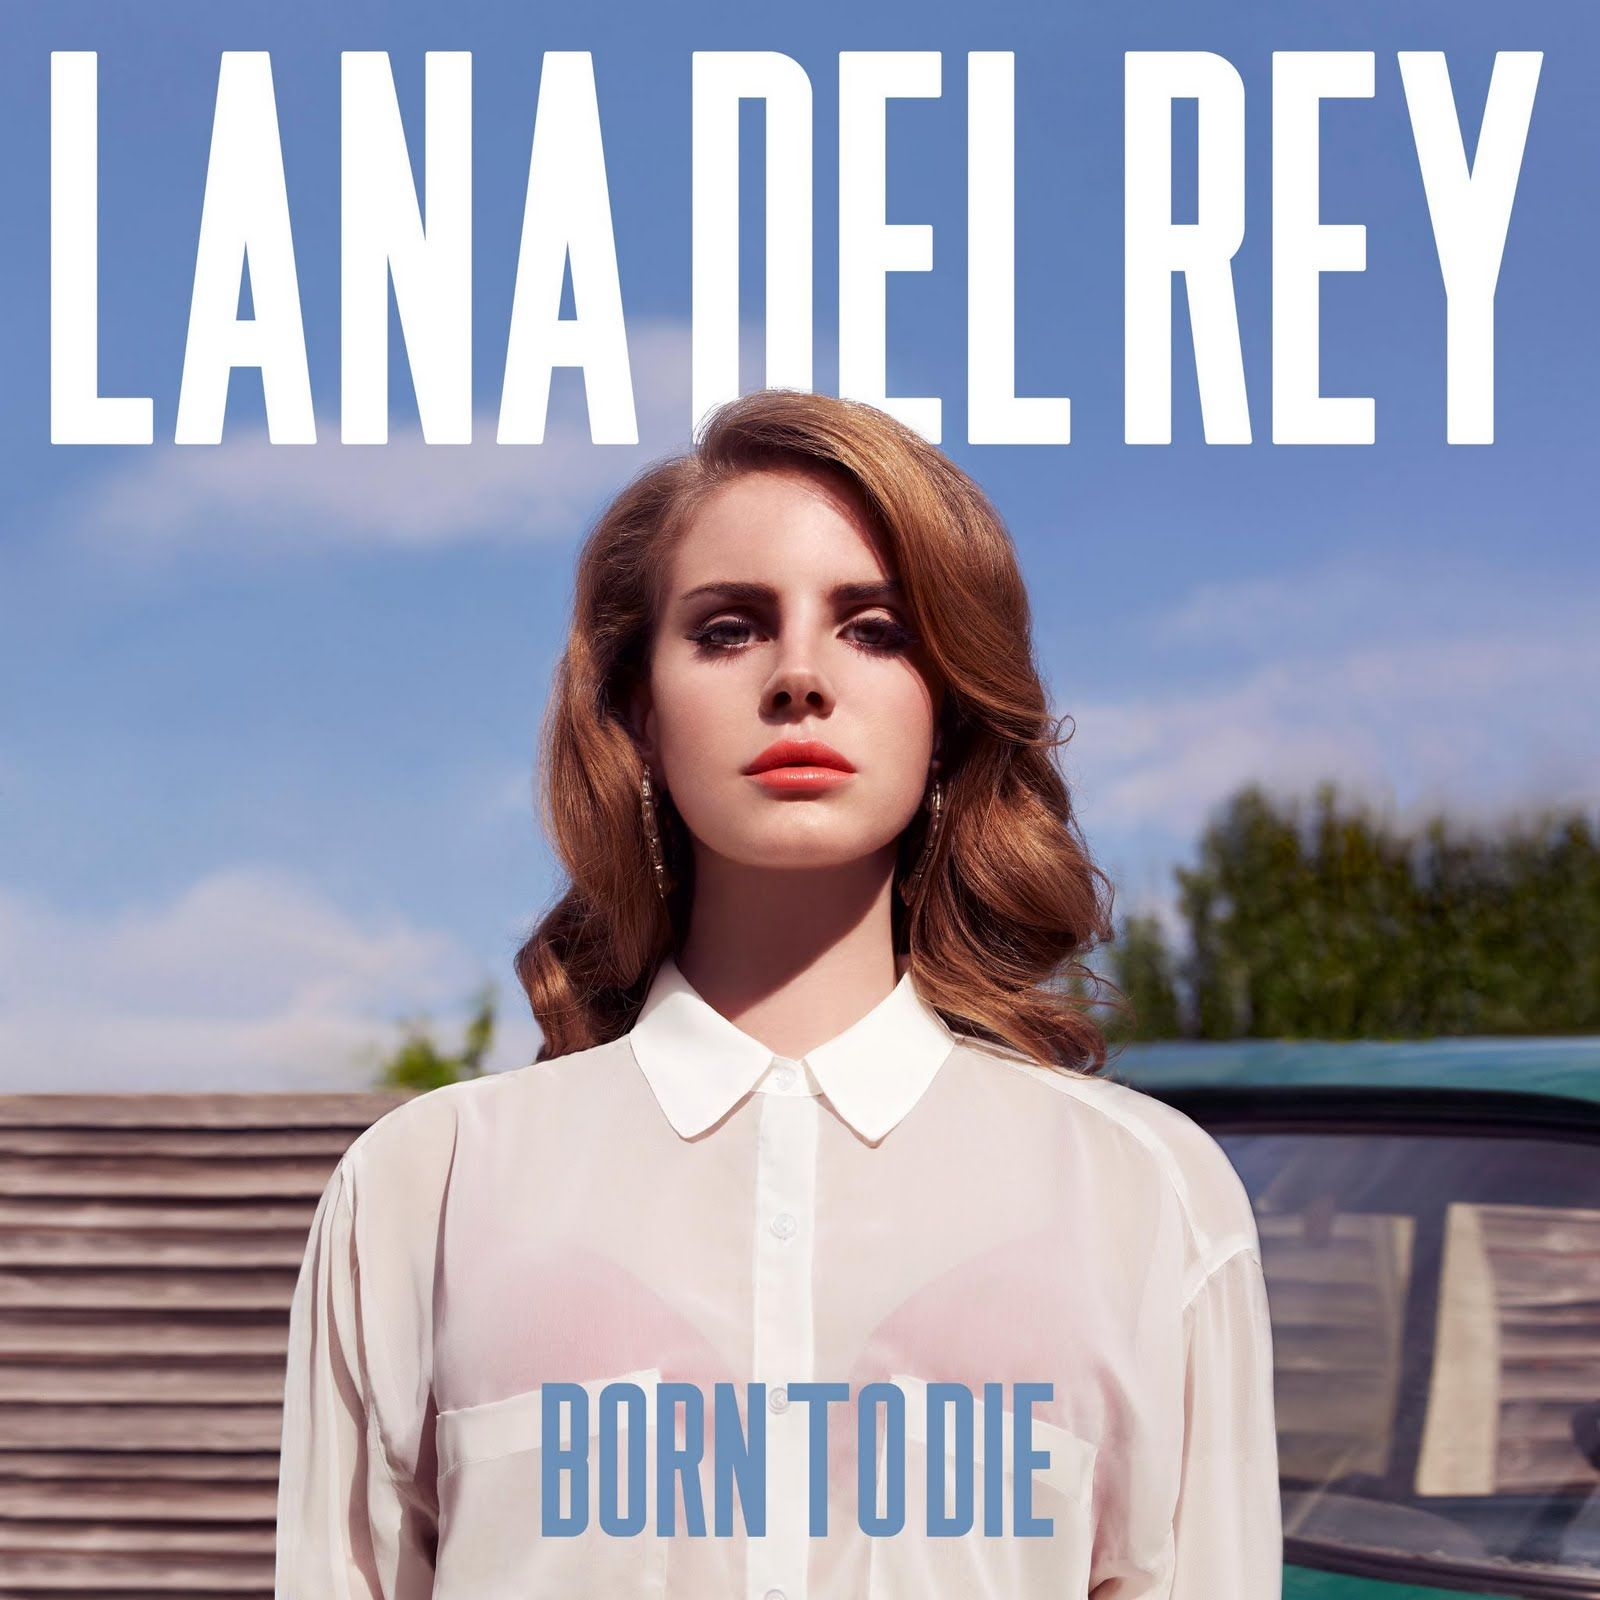 Lana Del Rey - Born To Die album cover